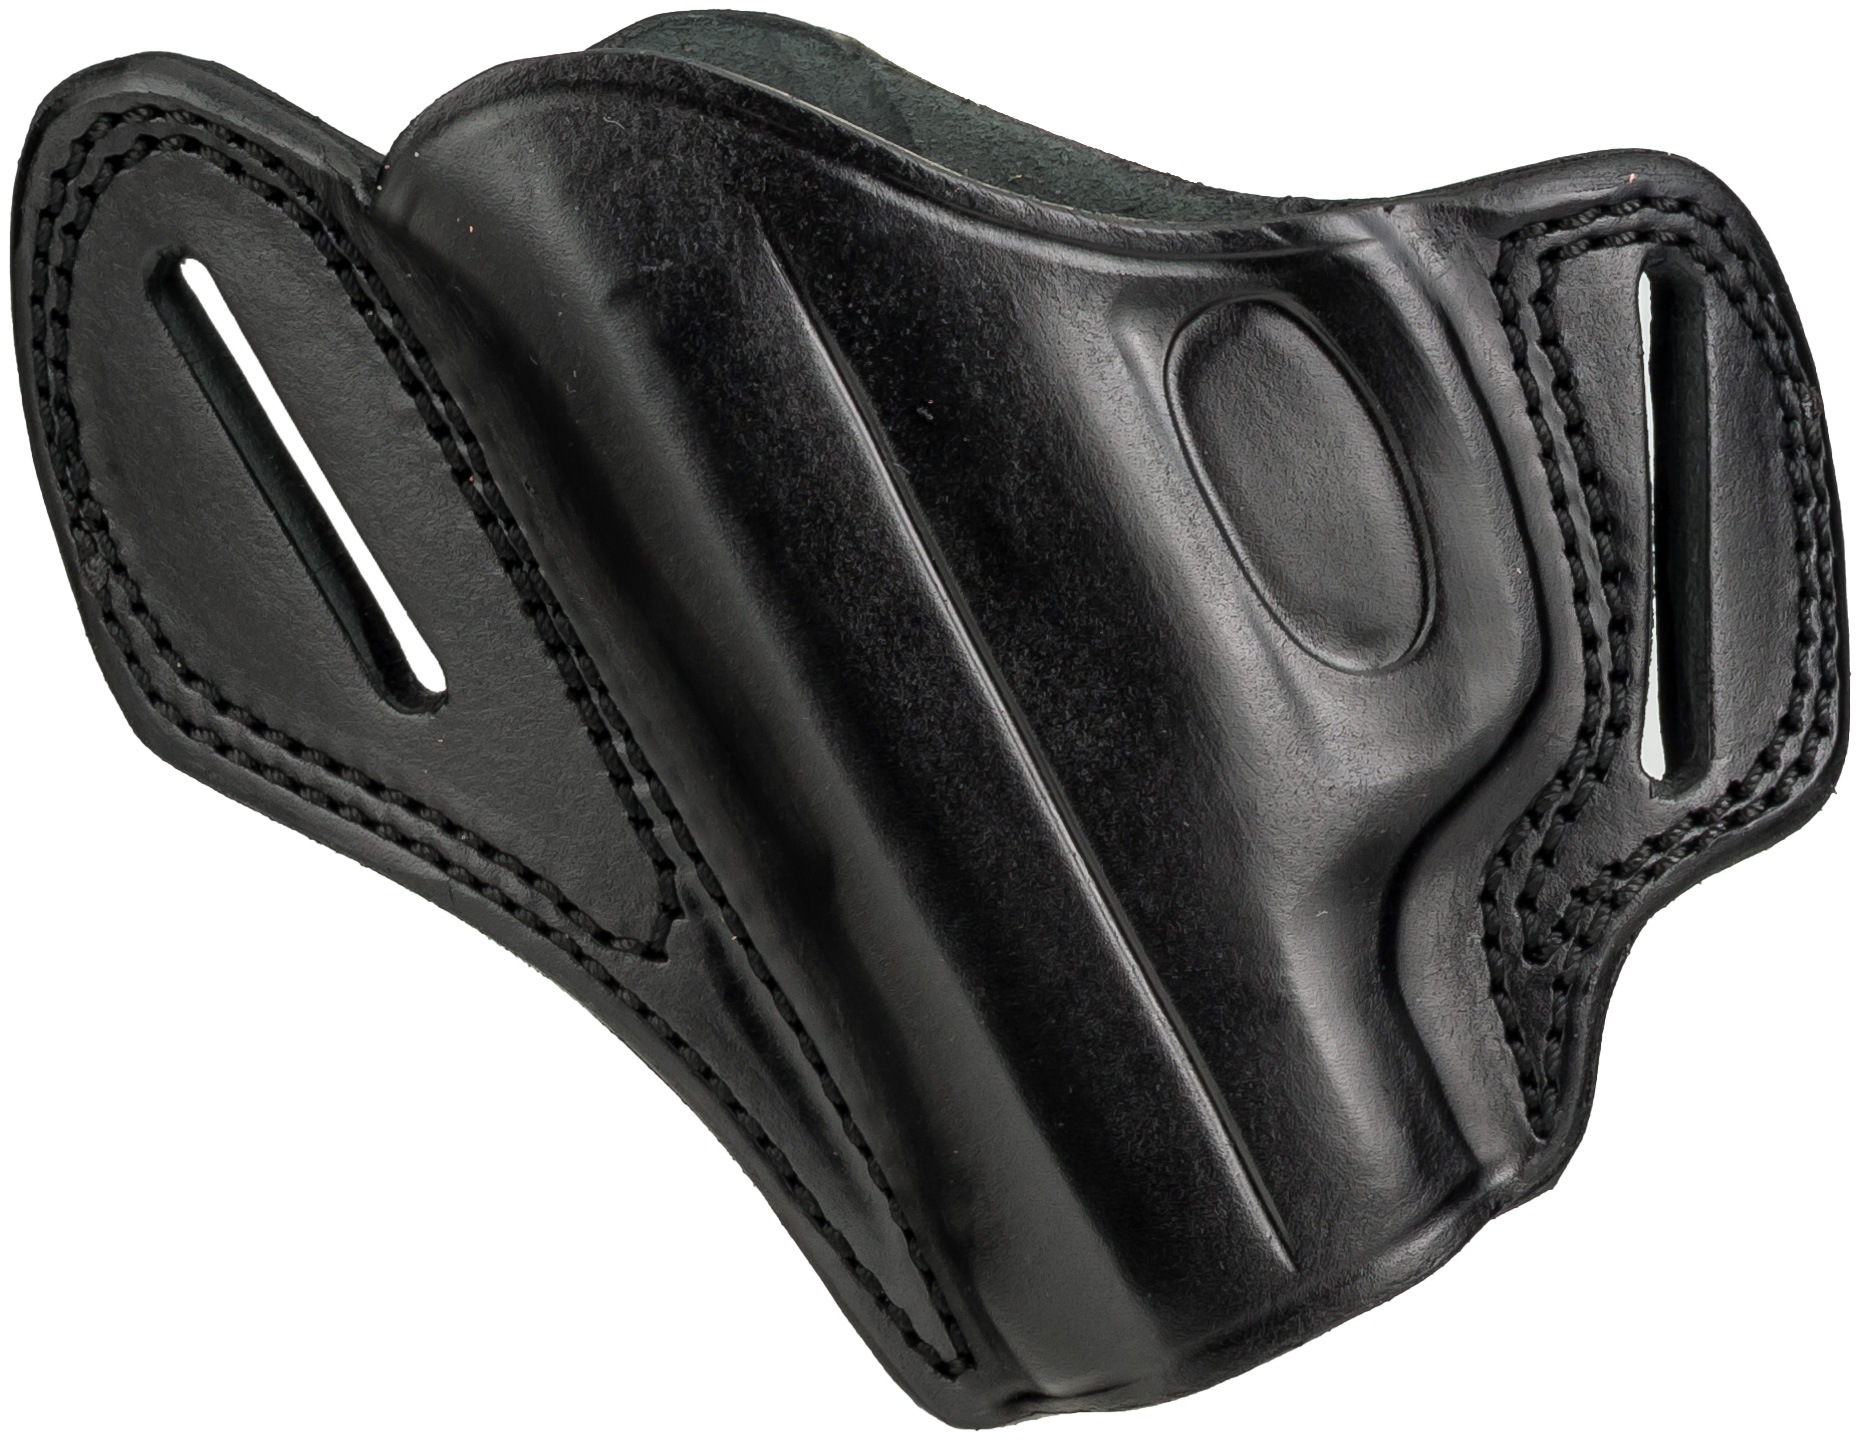 Cebeci Arms Leather Pancake Holster Combat Grip 20825